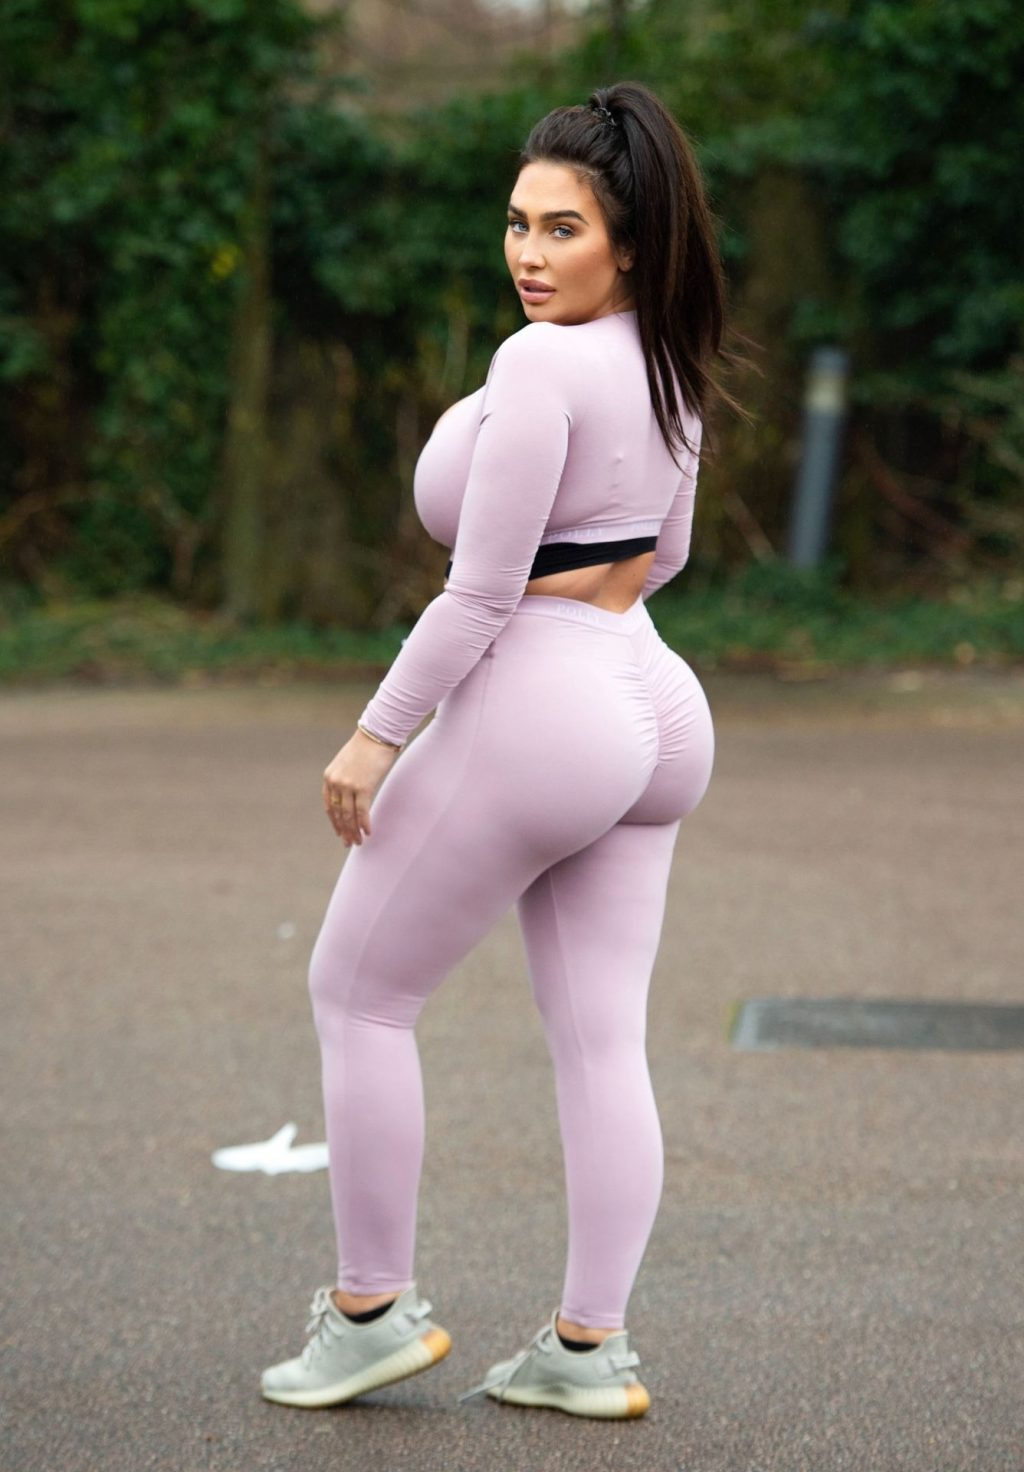 Lauren Goodger Is Seen Leaving Her House To Go Out For A Morning Run (20 Photos)